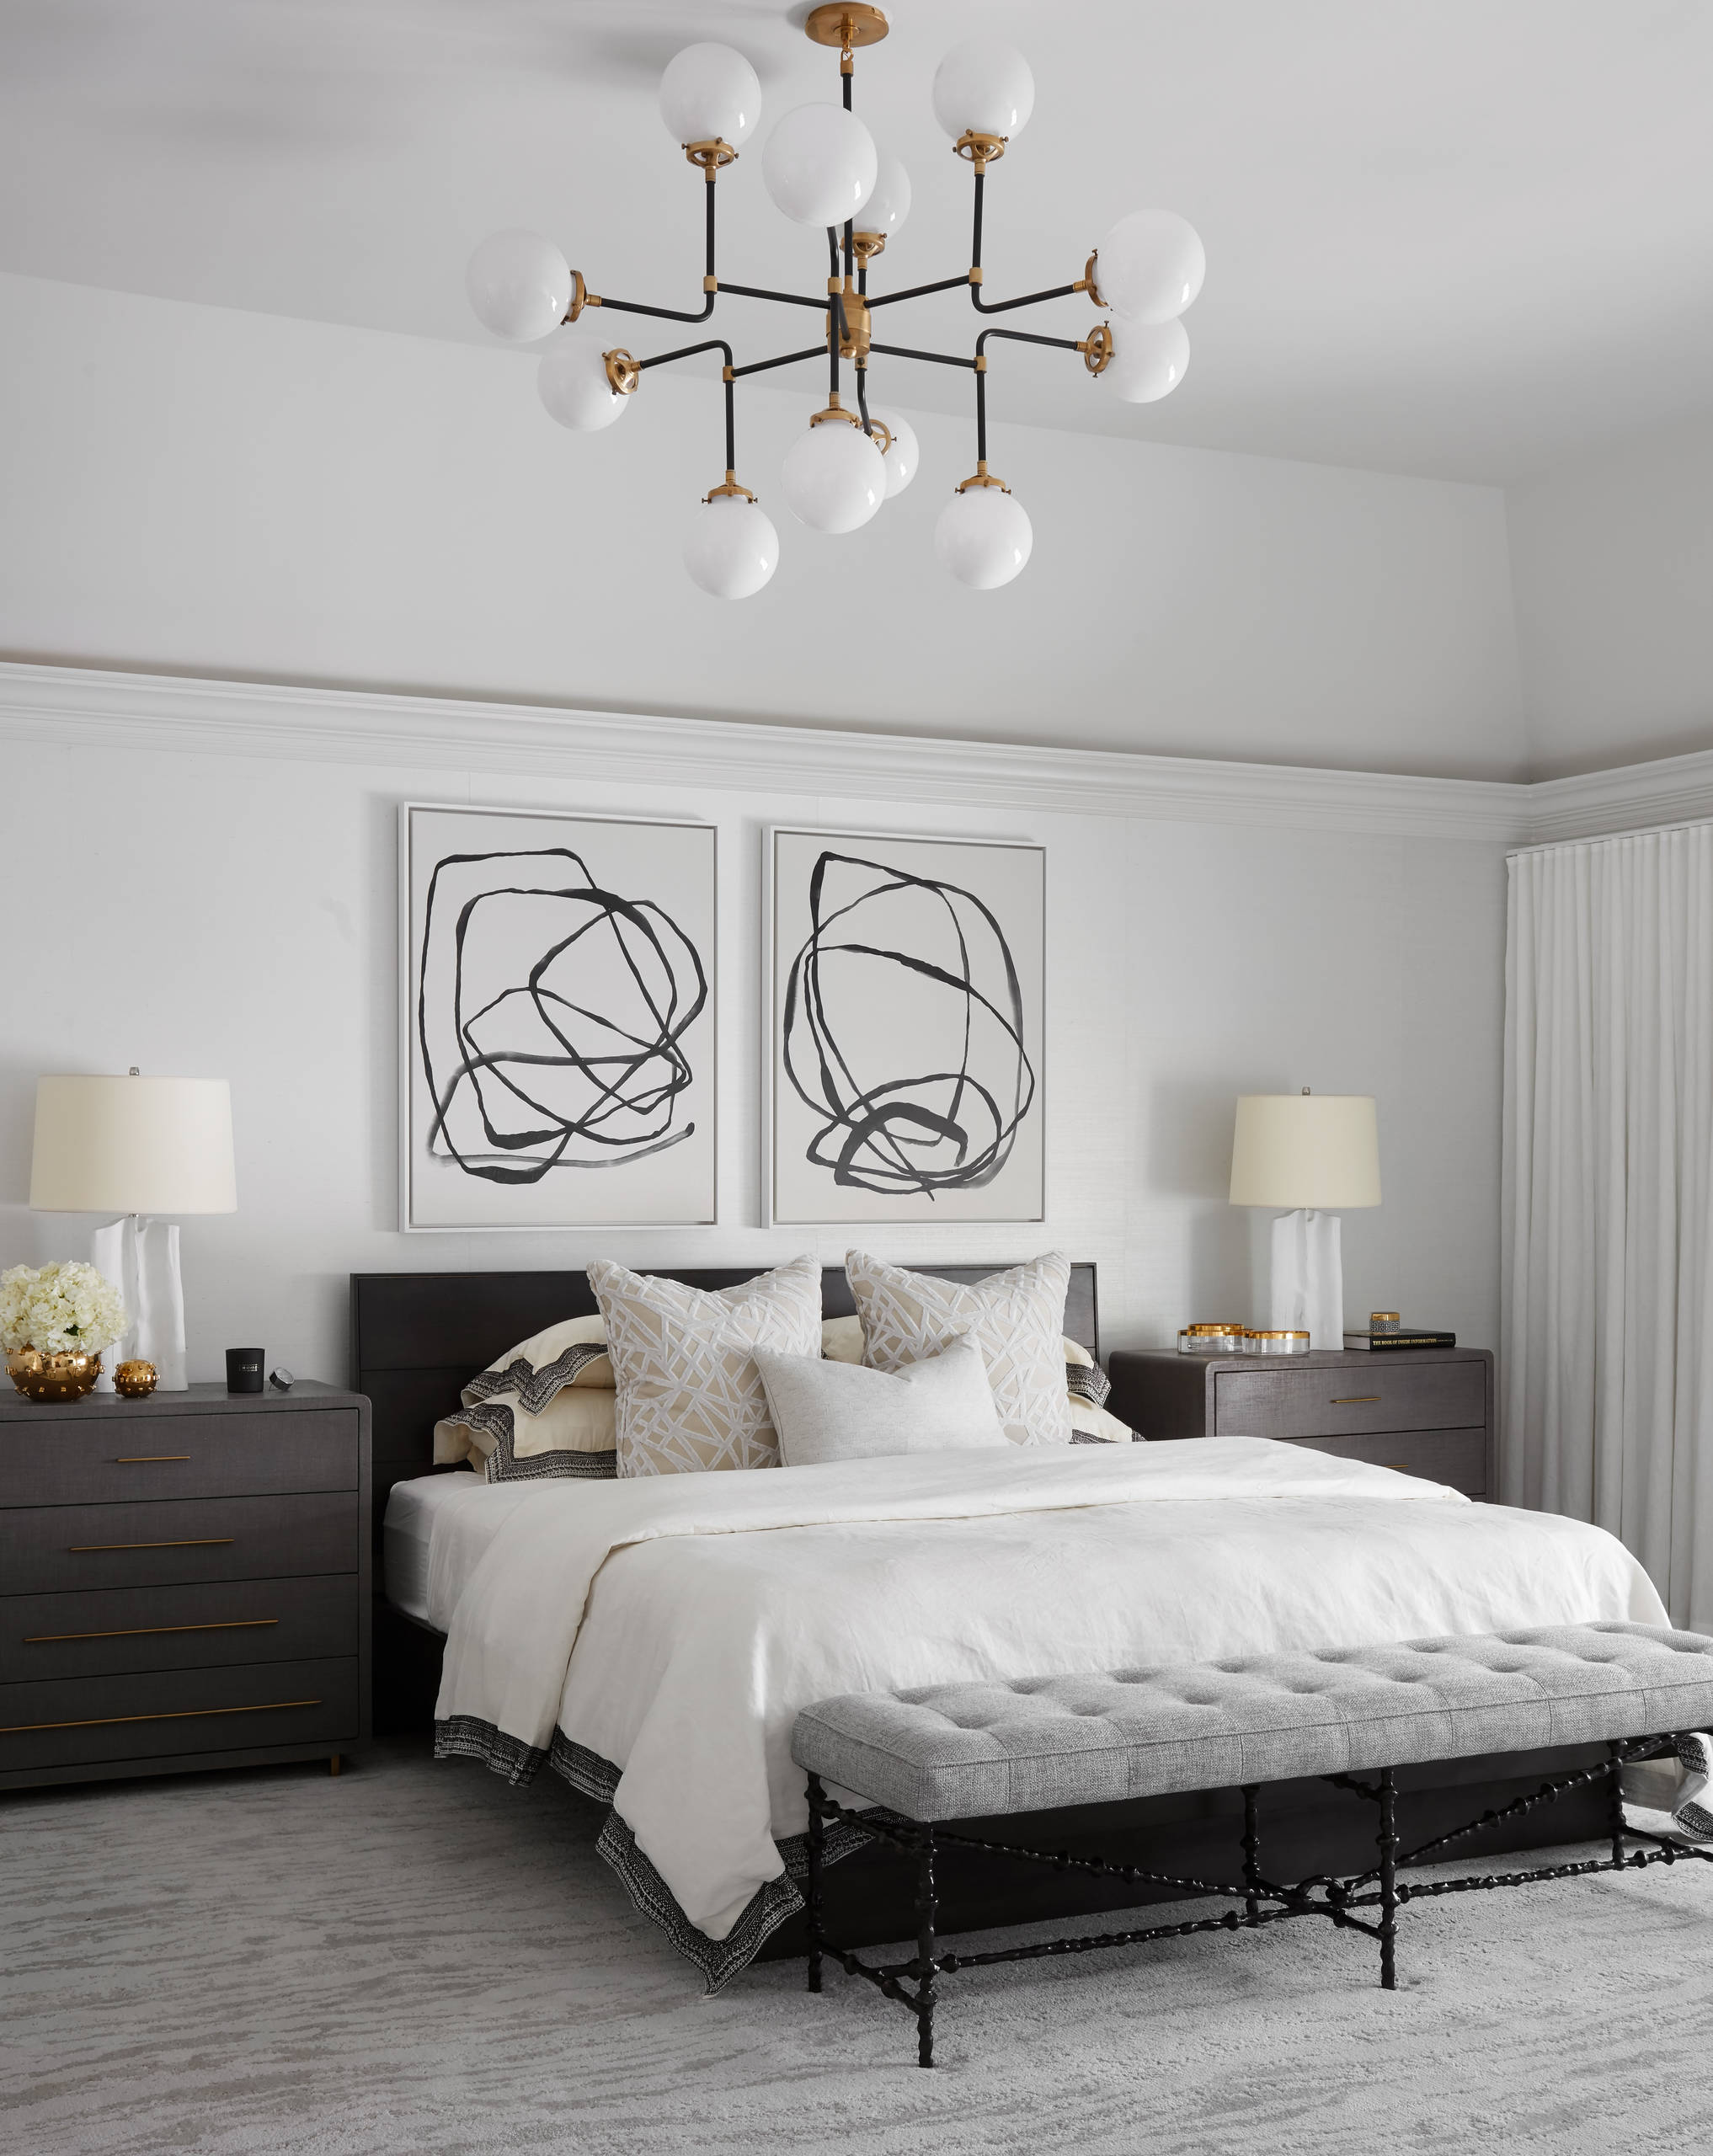 9 Beautiful Bedroom Pictures & Ideas - January, 9  Houzz